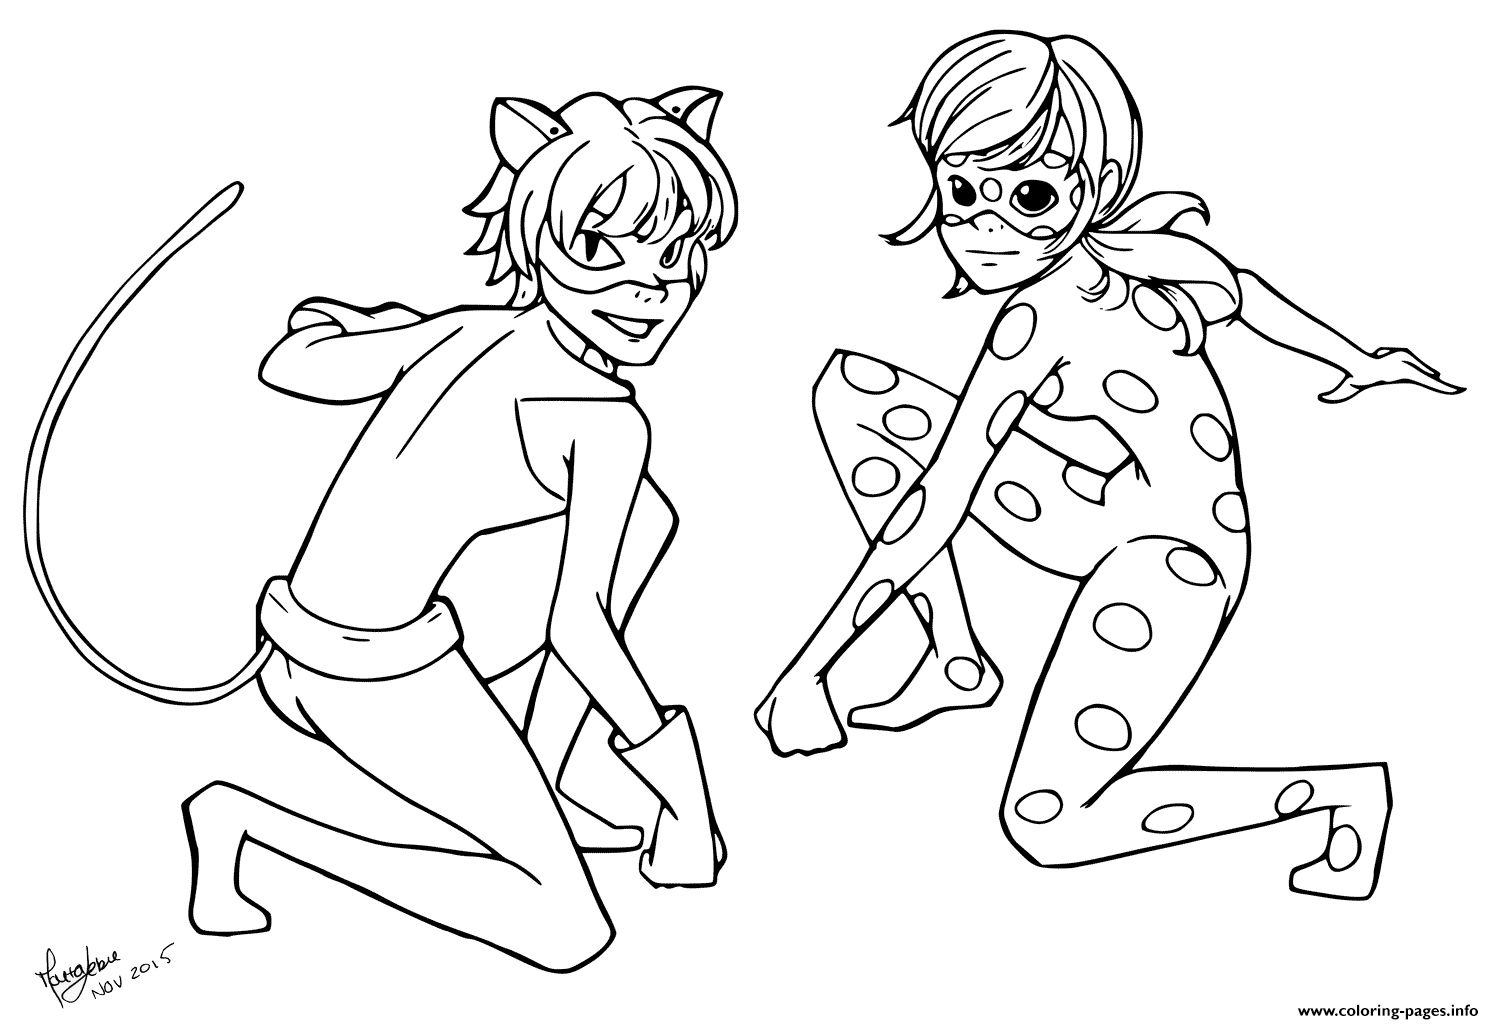 Cartoons Coloring Pages For Kids Ladybug And Cat Noir